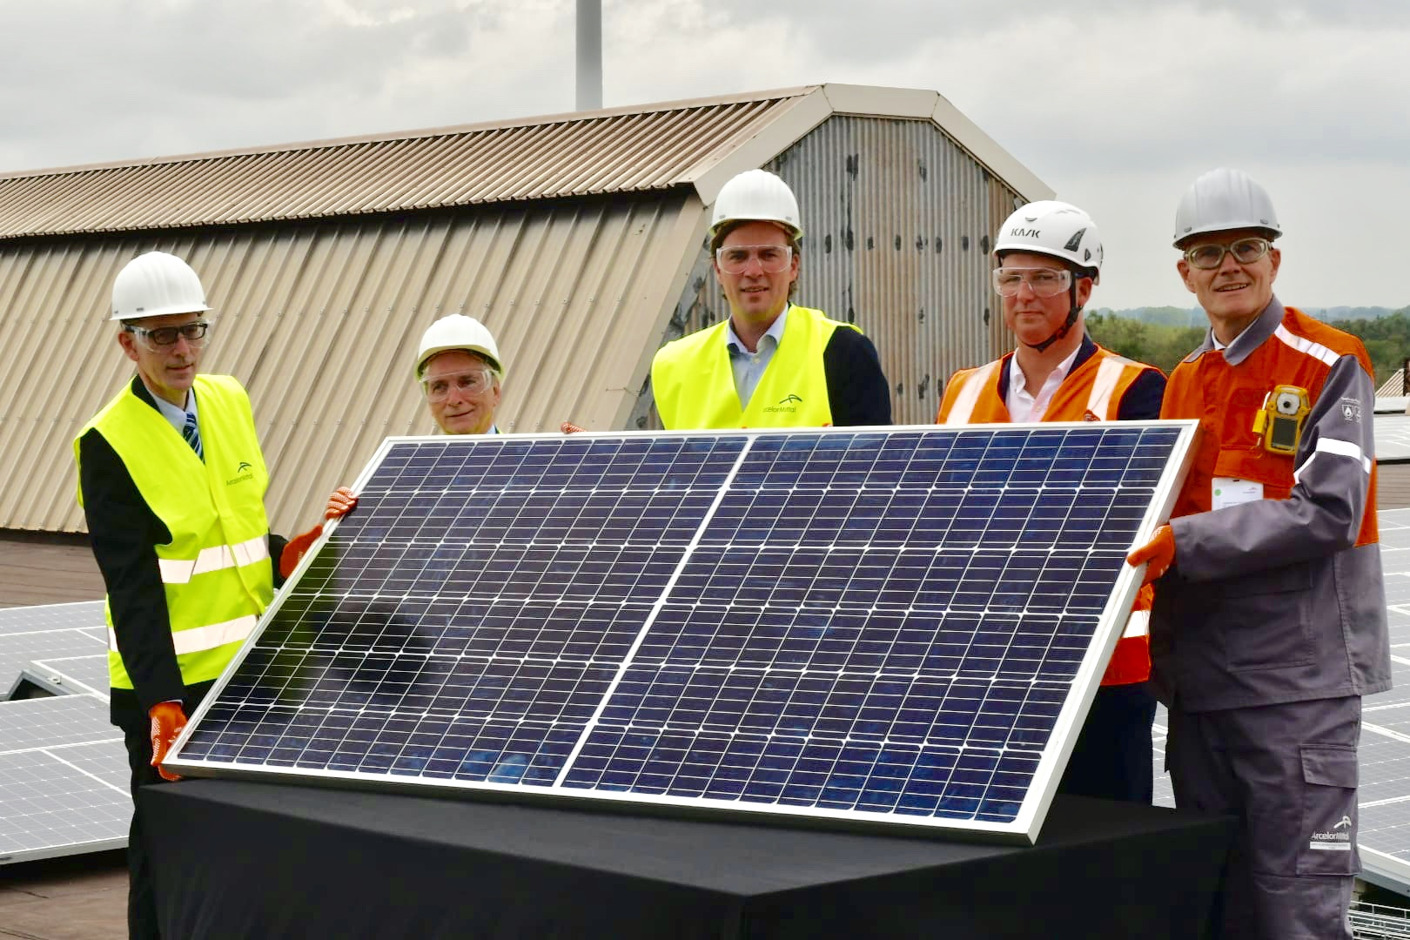 Eneco and ArcelorMittal unveil Belgium's largest solar roof